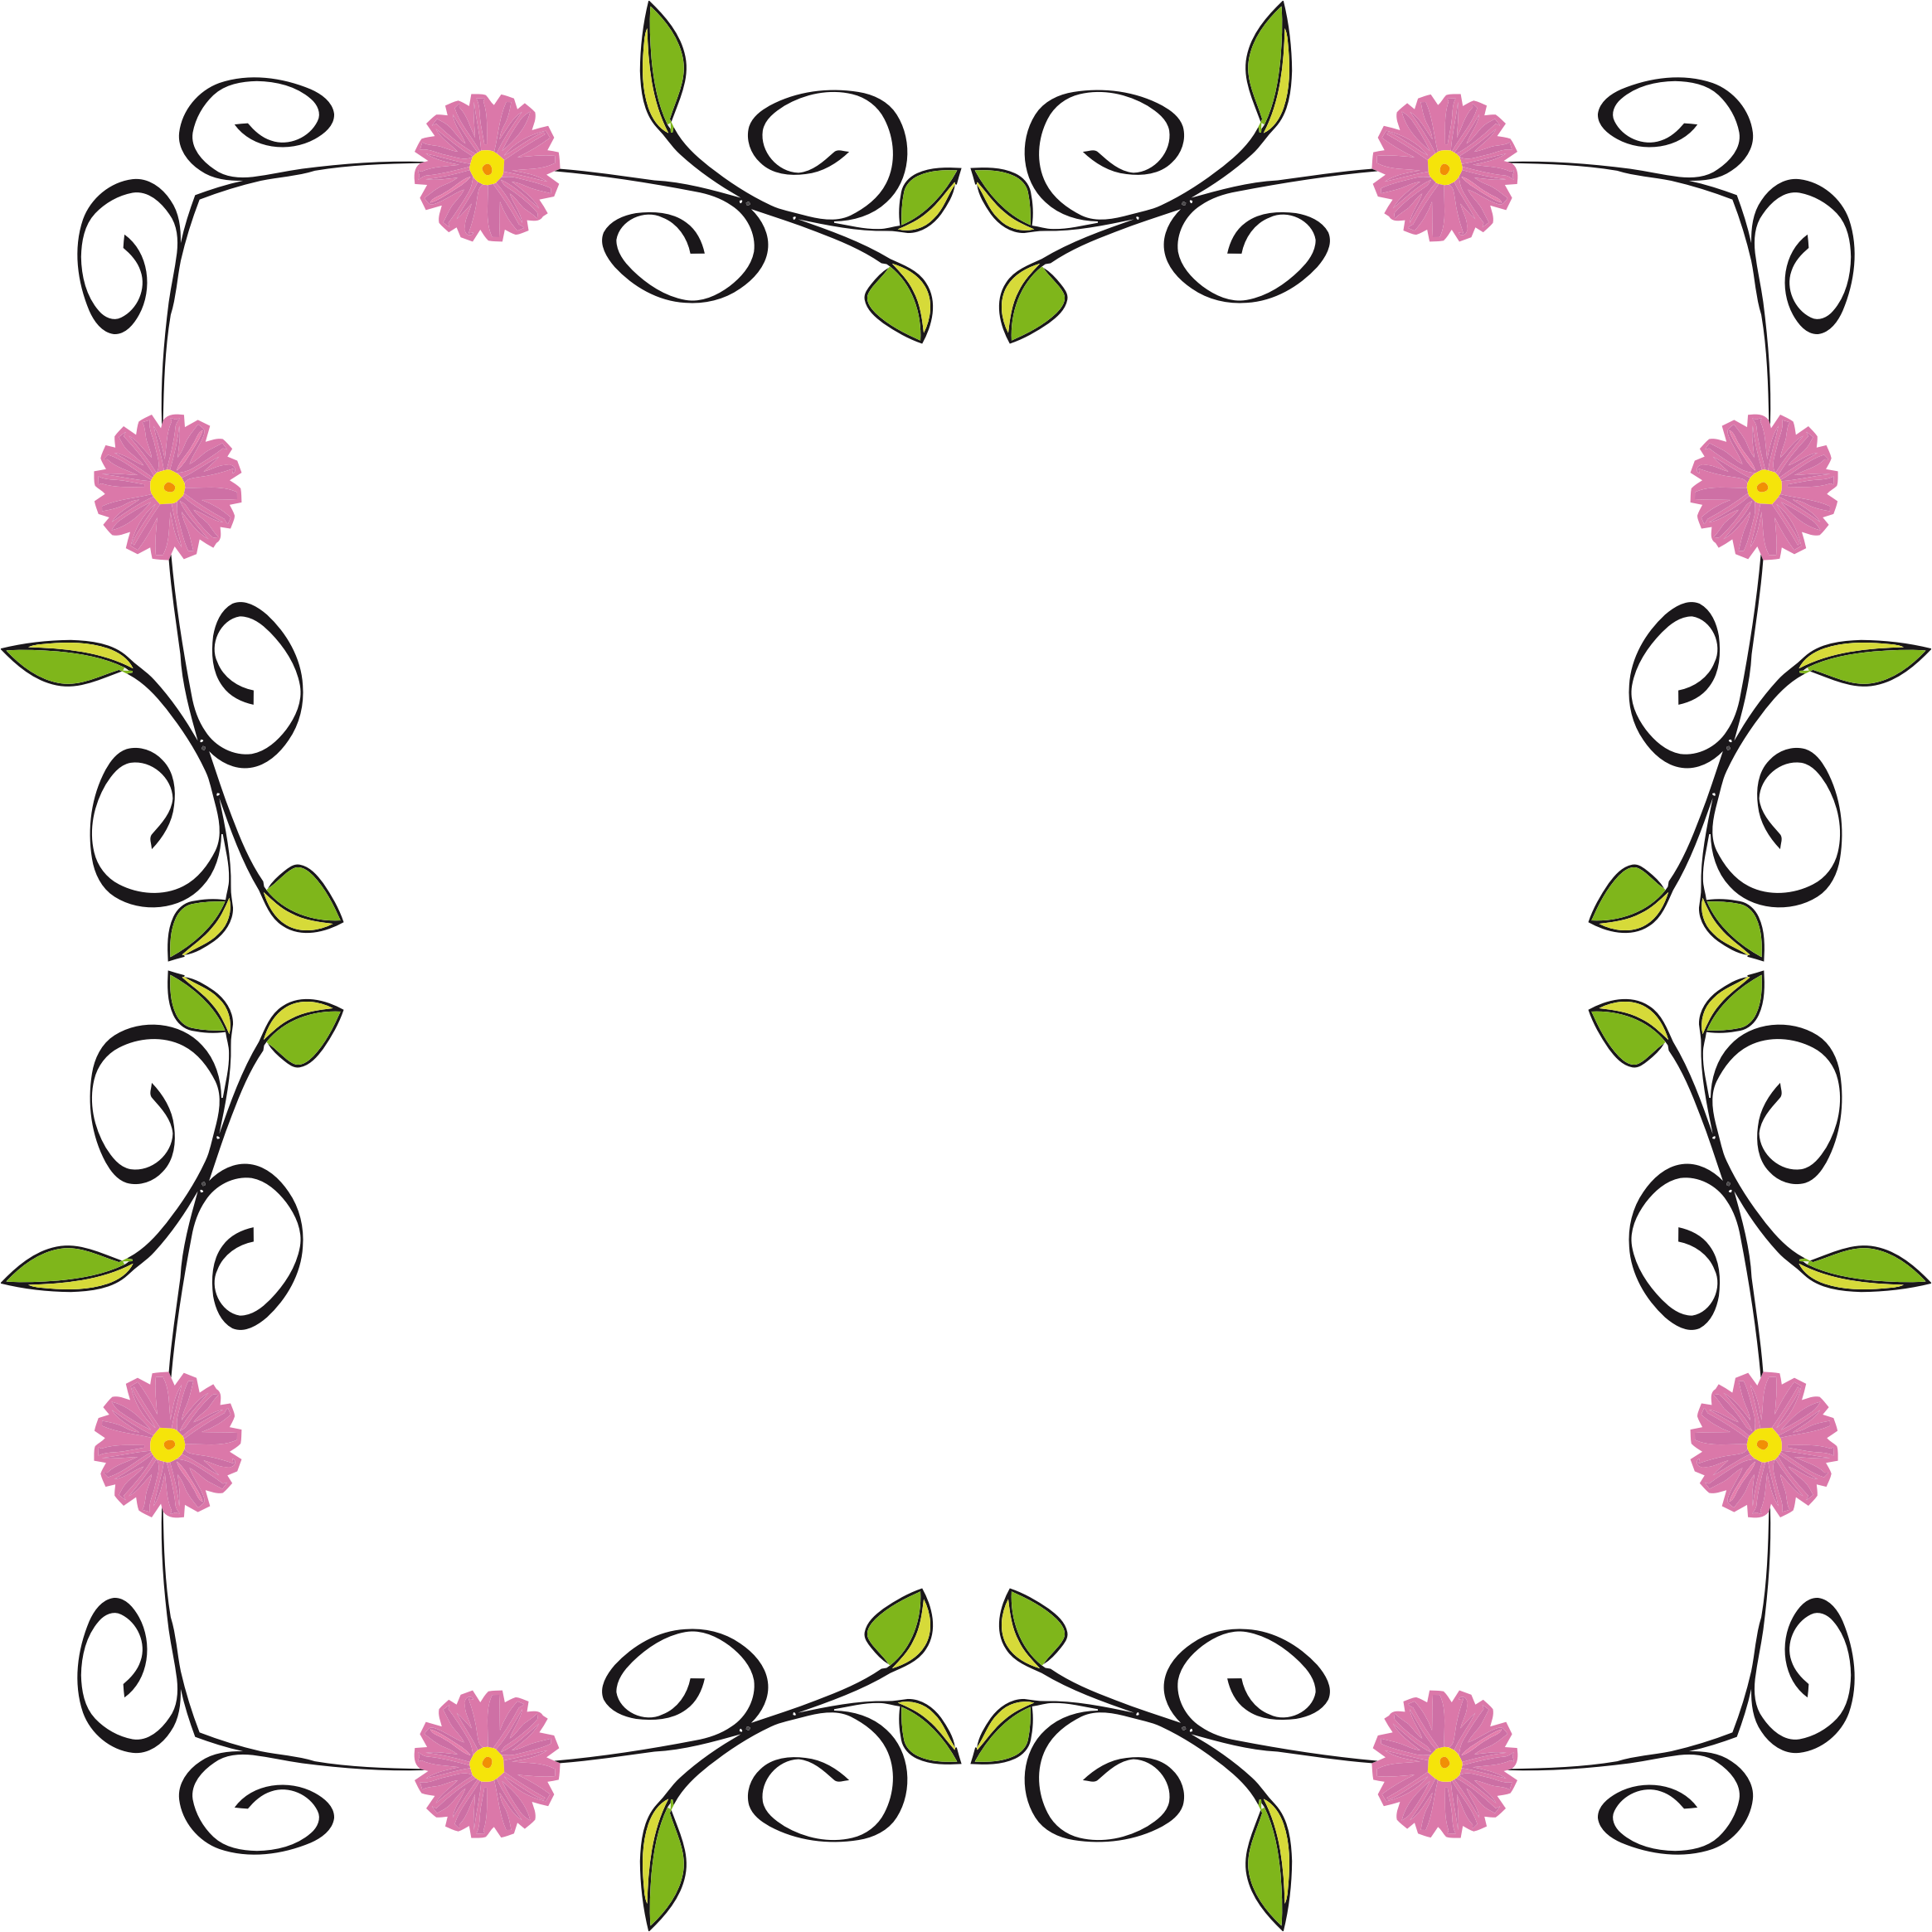 Floral Border Extended by GDJ